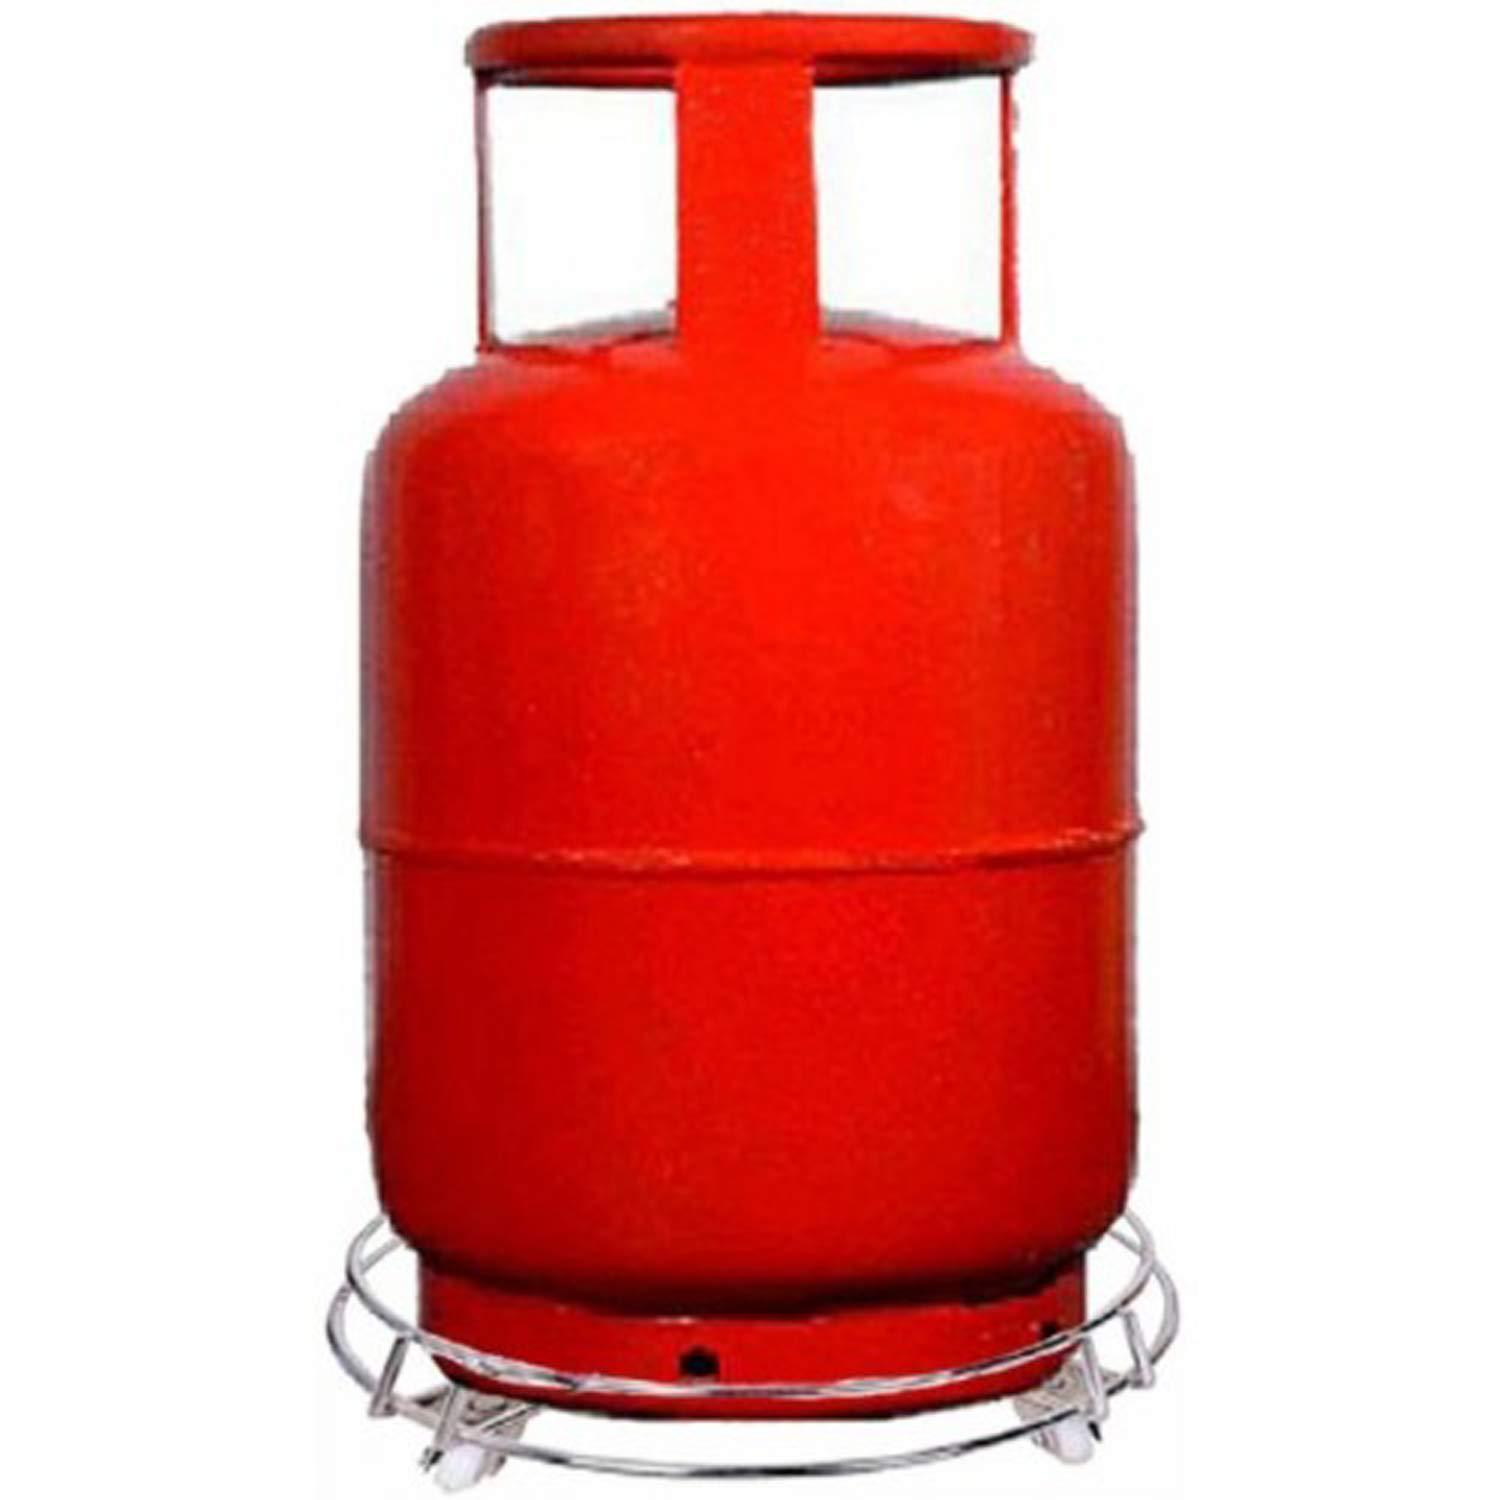 Stainless Steel Gas Cylinder Trolley with Wheels LPG Cylinder Roller Stand Movable Trolley